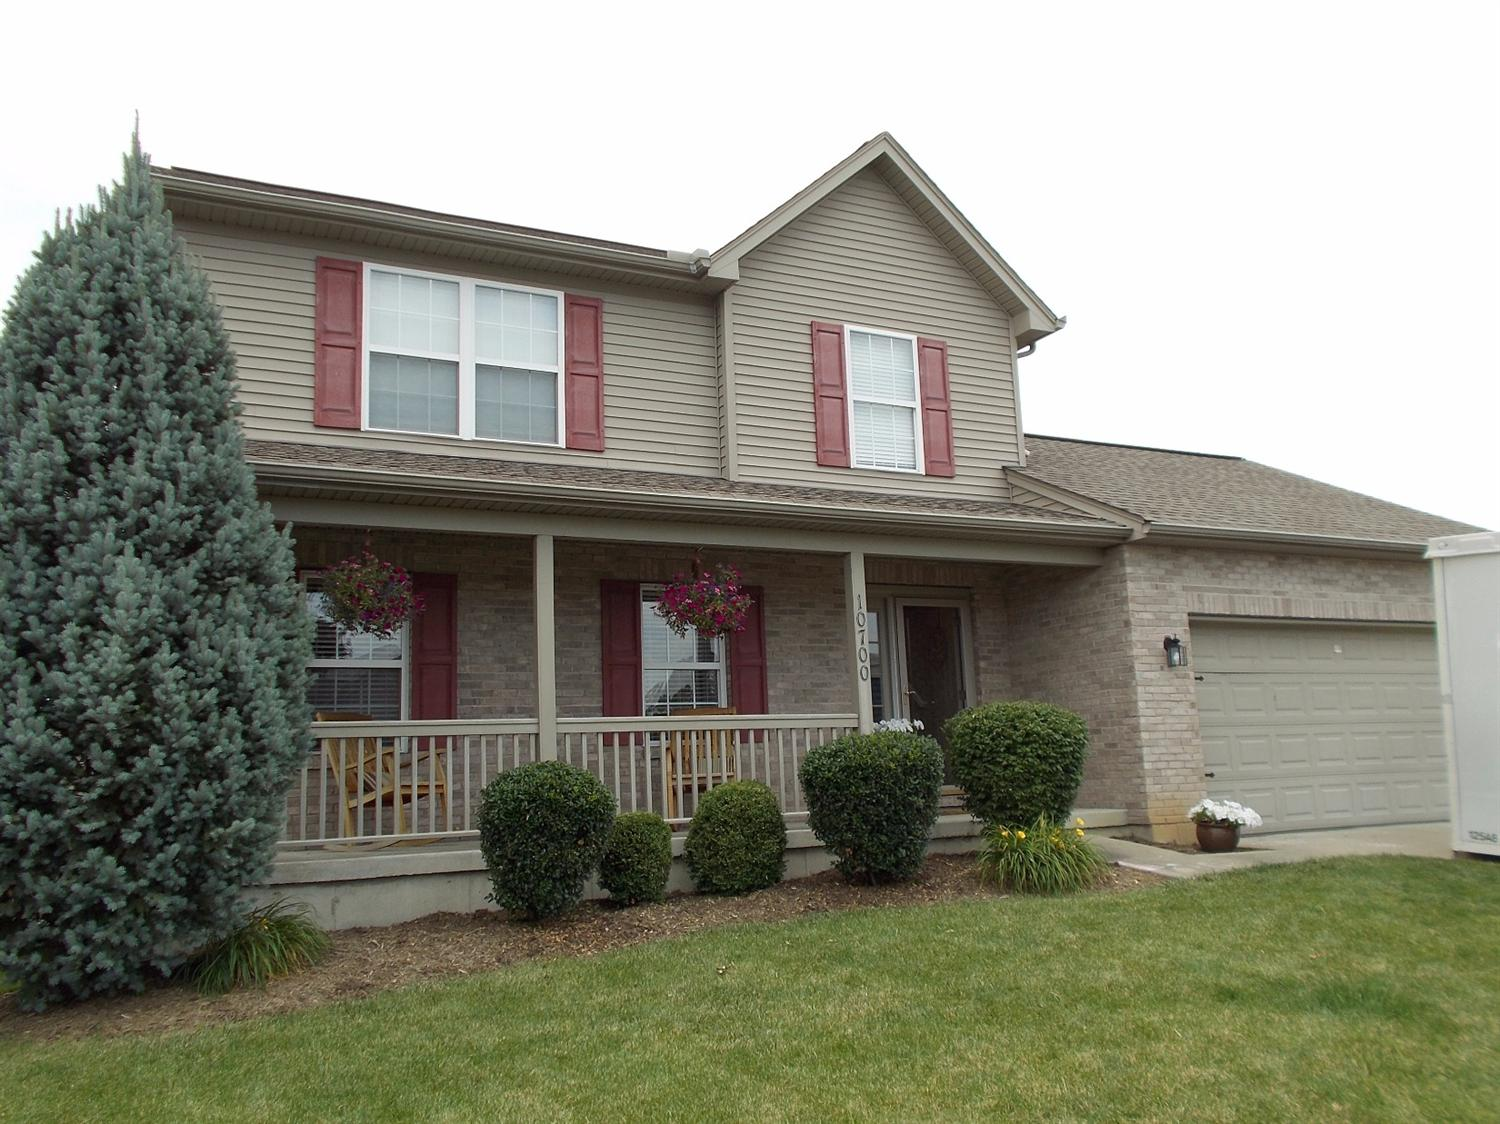 Photo 1 for 10700 Fremont Dr Independence, KY 41051